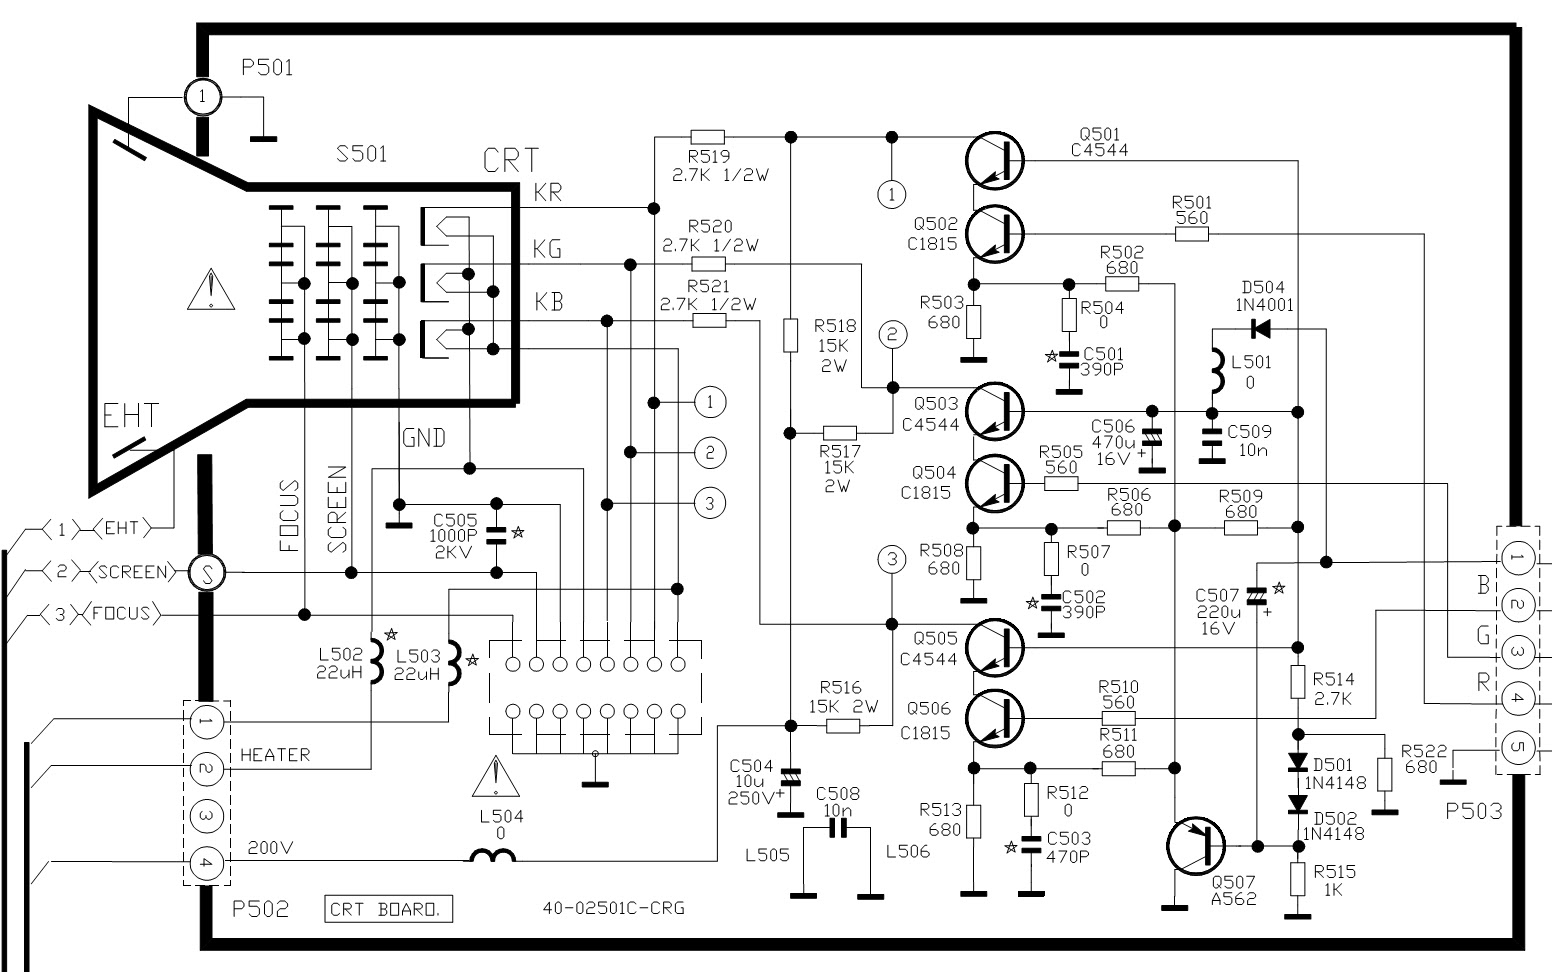 crt wiring diagram tcl mr-29tf 19rca - power supply schematic [smps] - crt ...